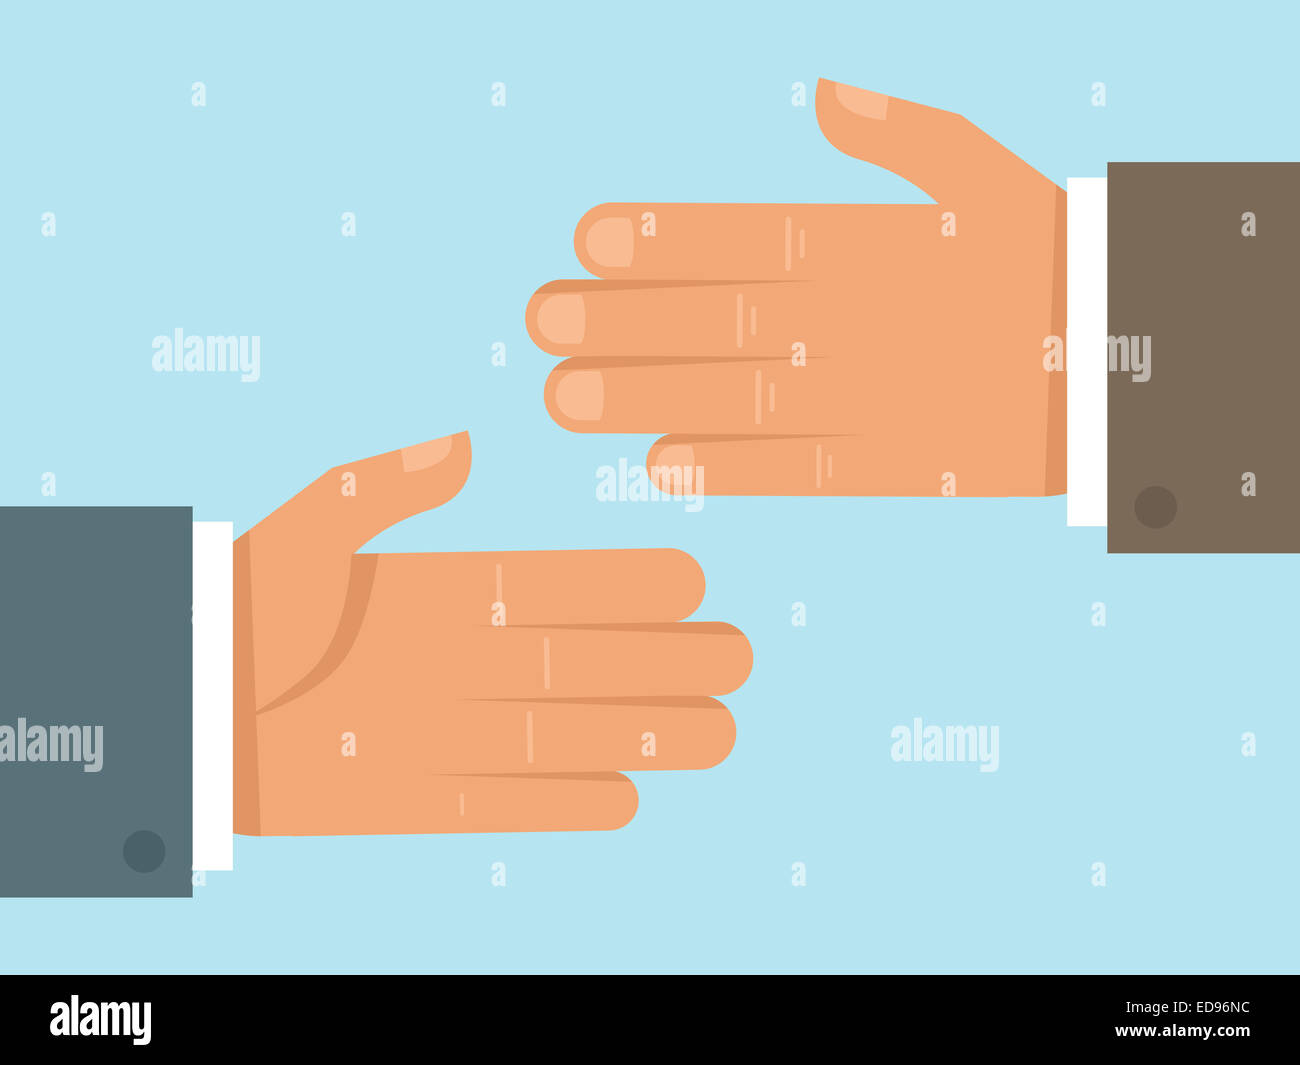 Handshake concept in flat style - cooperation and partnership concept in flat style - Stock Image